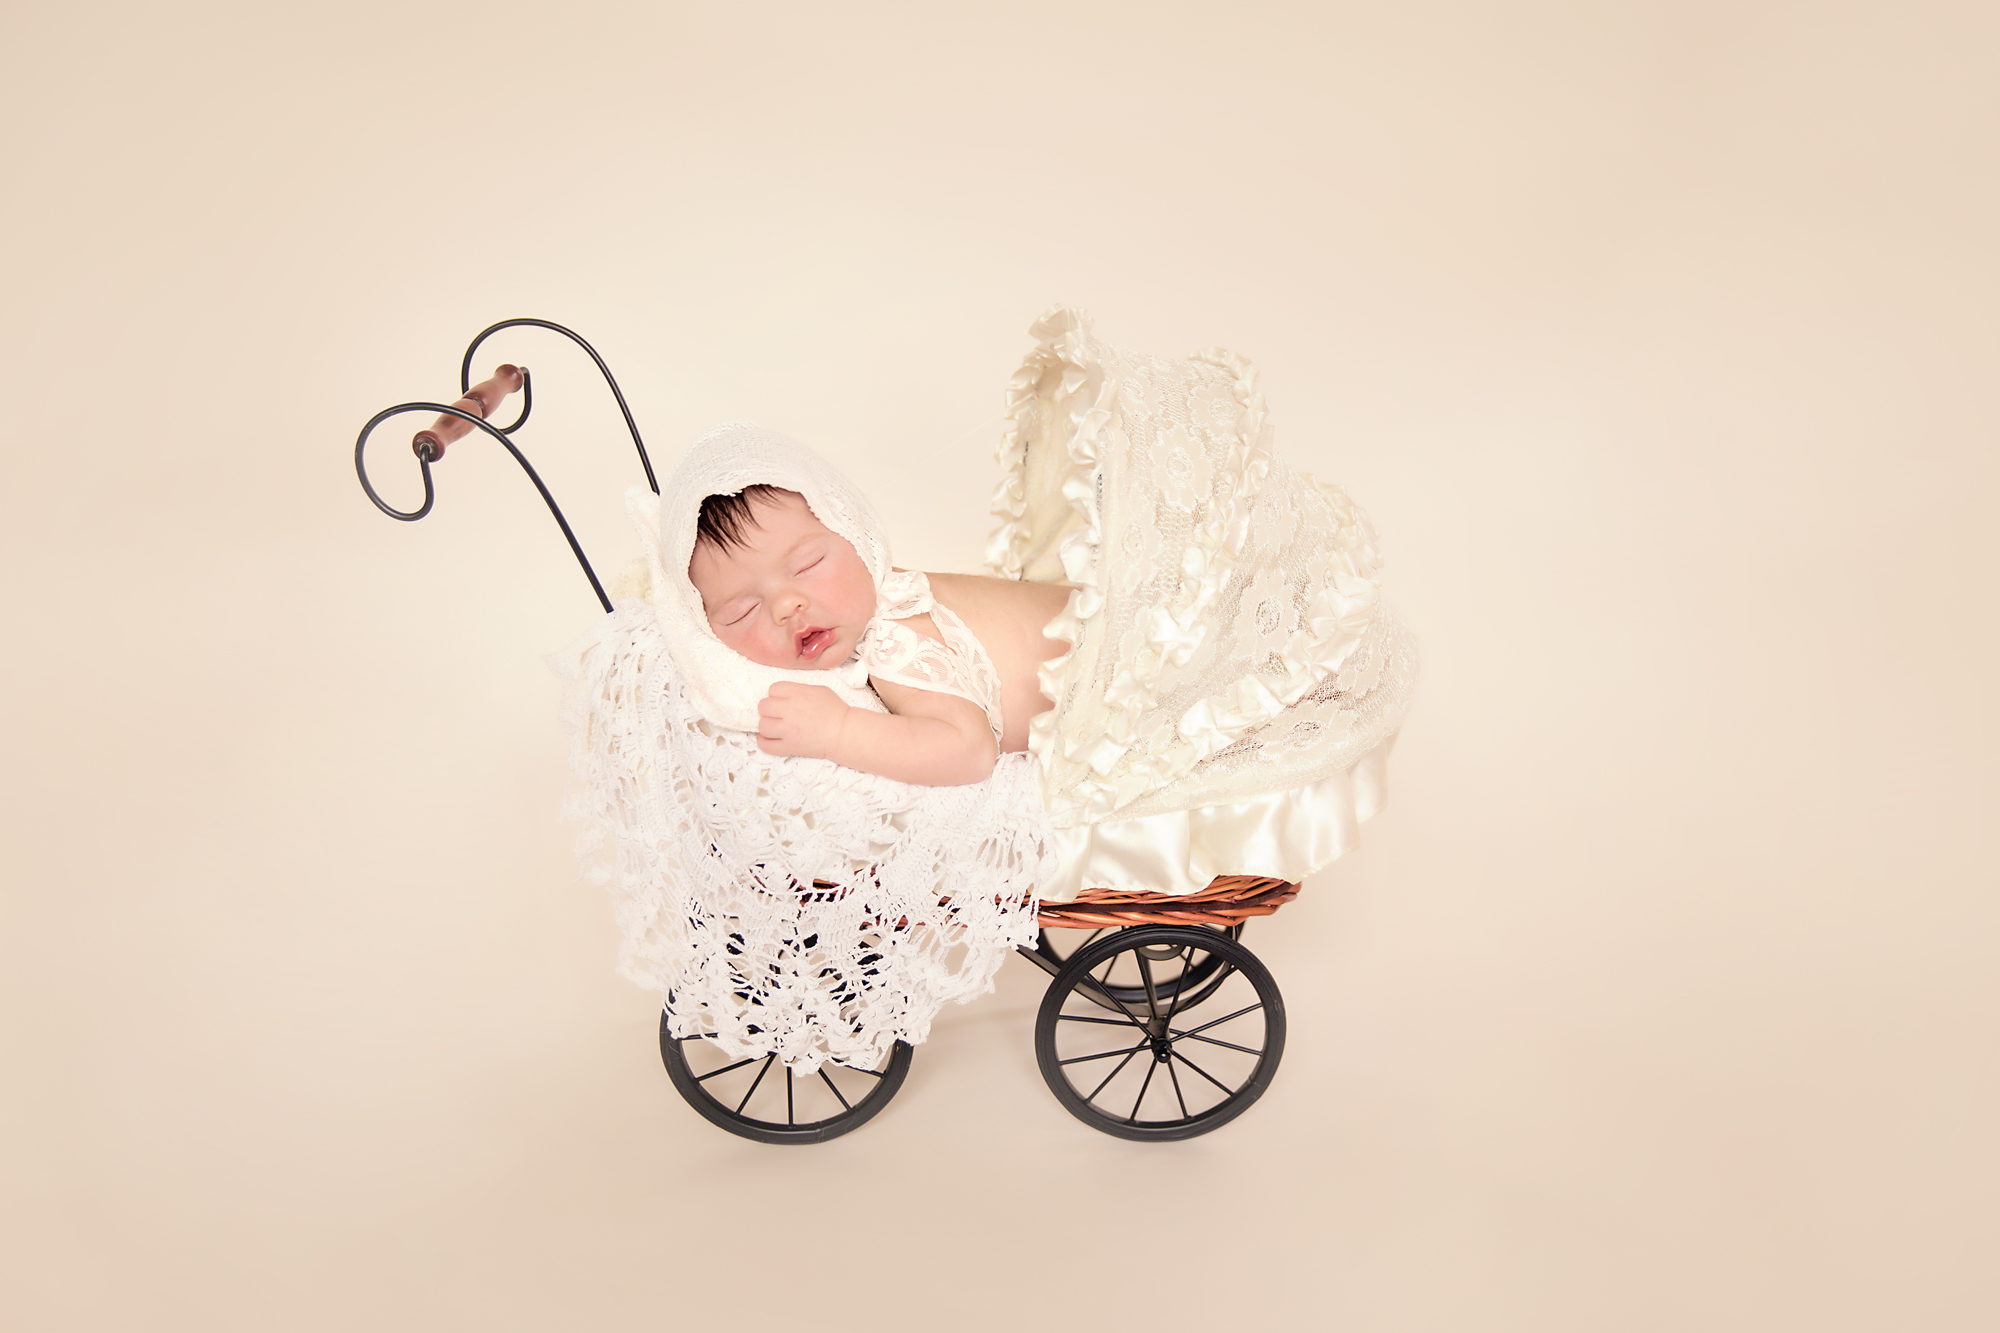 Newborn baby girl photoshoot idea. Calgary and Airdrie Newborn Photographer - Milashka Photography. Baby girl is posed in a stroller.